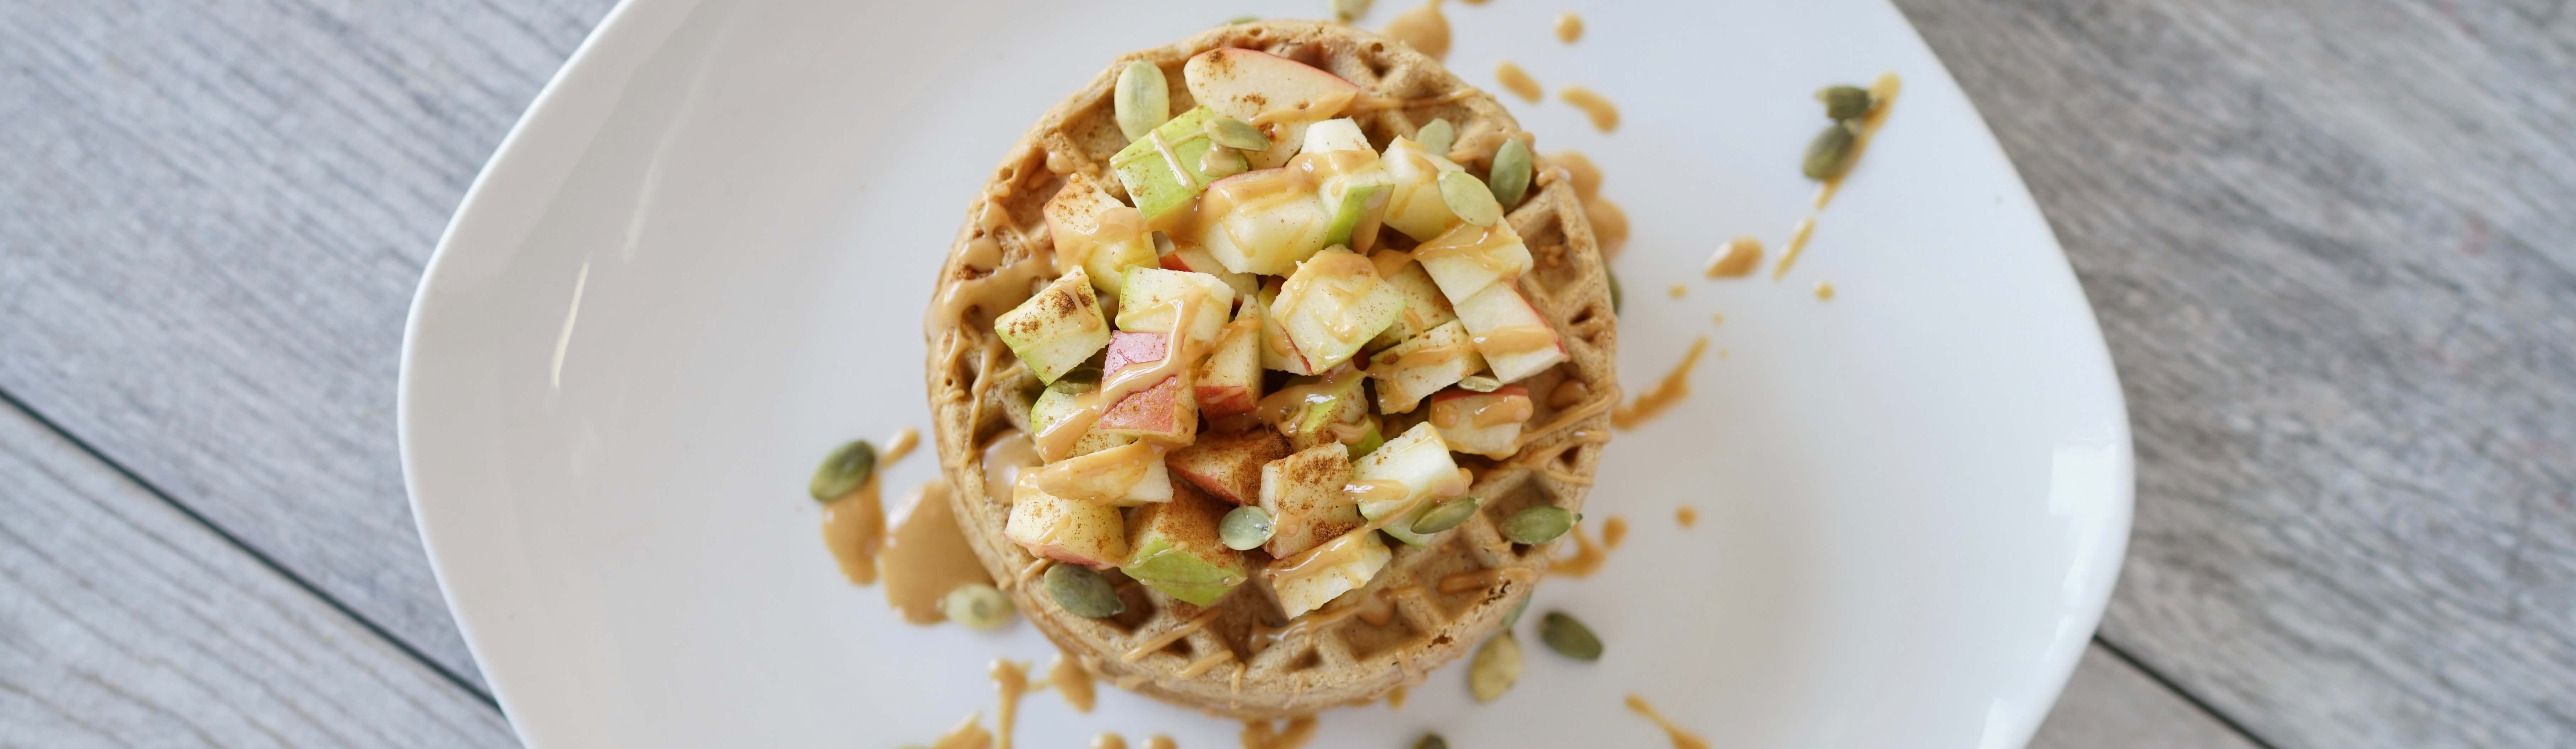 Apple and Cinnamon Peanut Butter Waffles